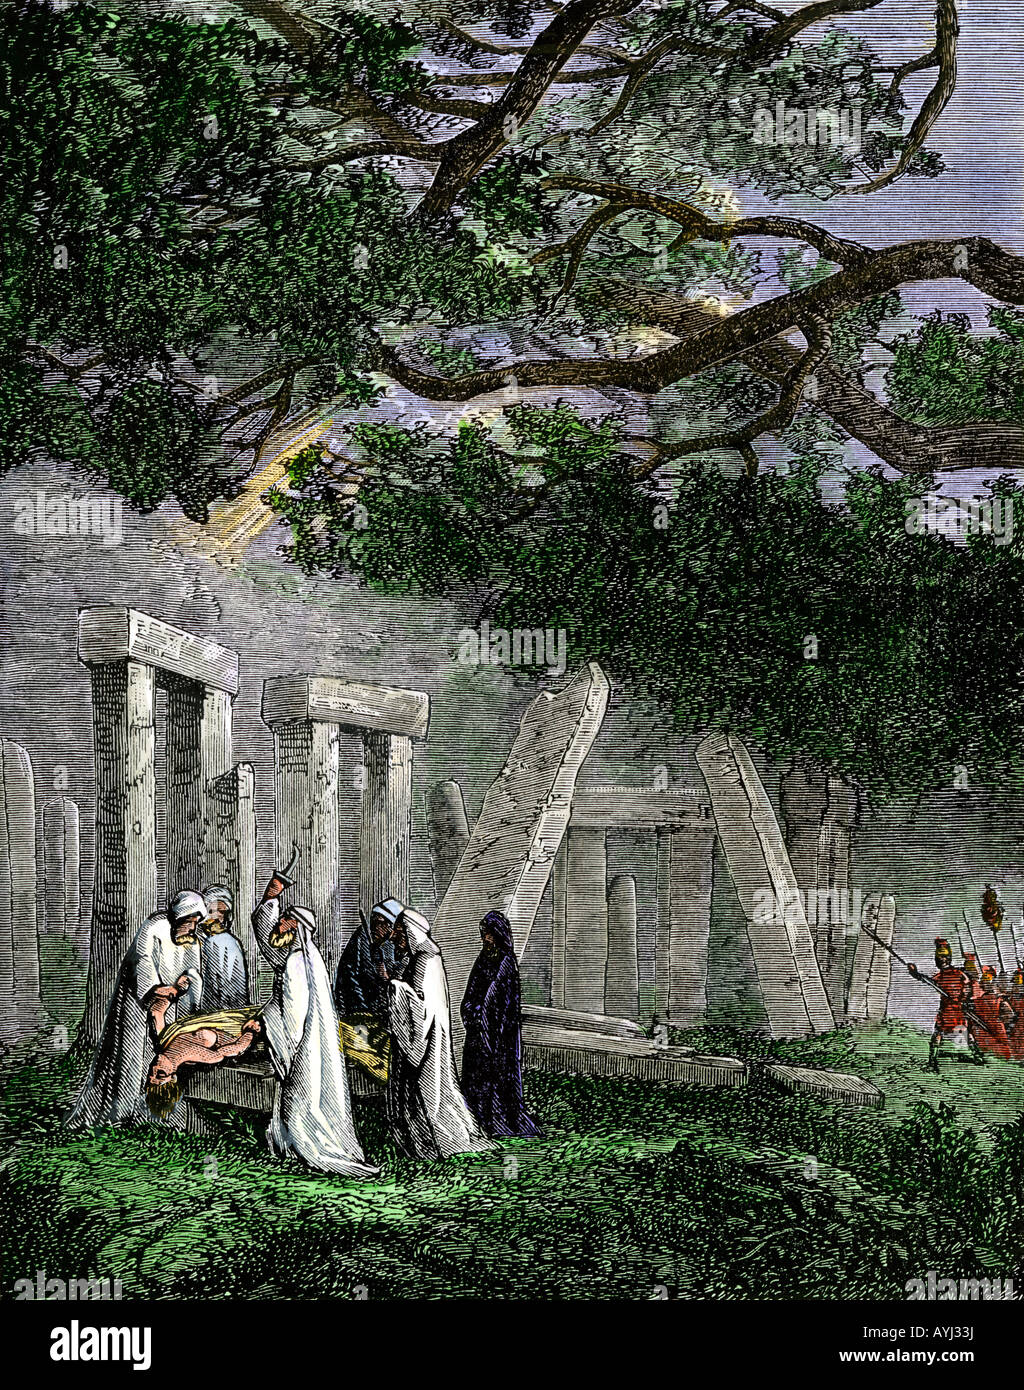 Druid human sacrifice at Stonehenge halted by Roman soldiers. Hand-colored woodcut - Stock Image